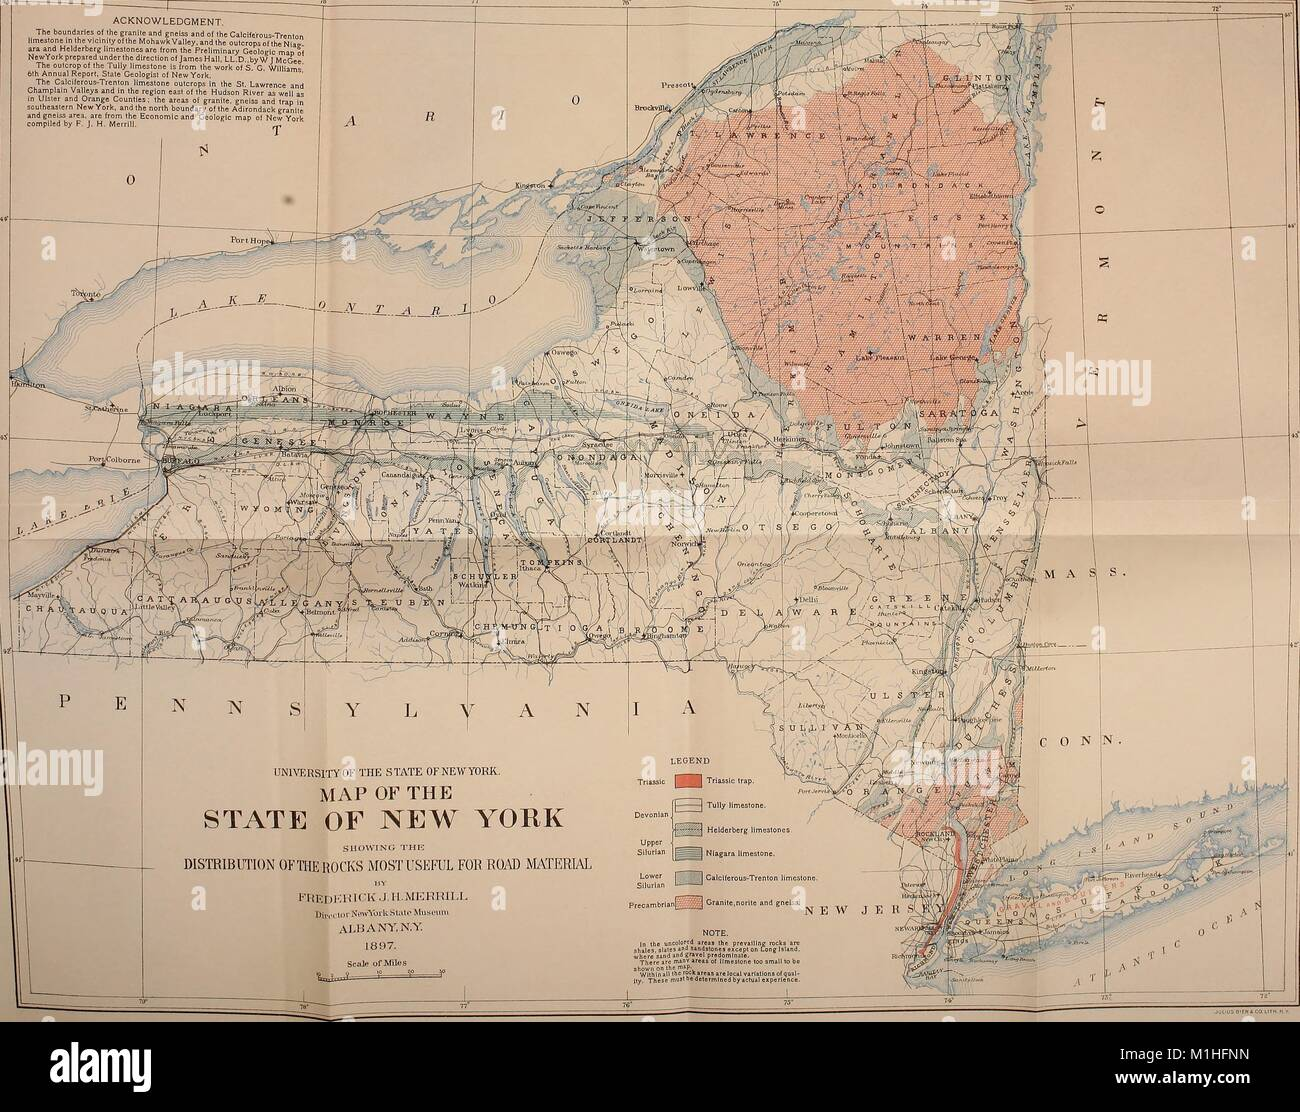 Map legend stock photos map legend stock images alamy color illustration of a map of the state of new york united states of america gumiabroncs Images